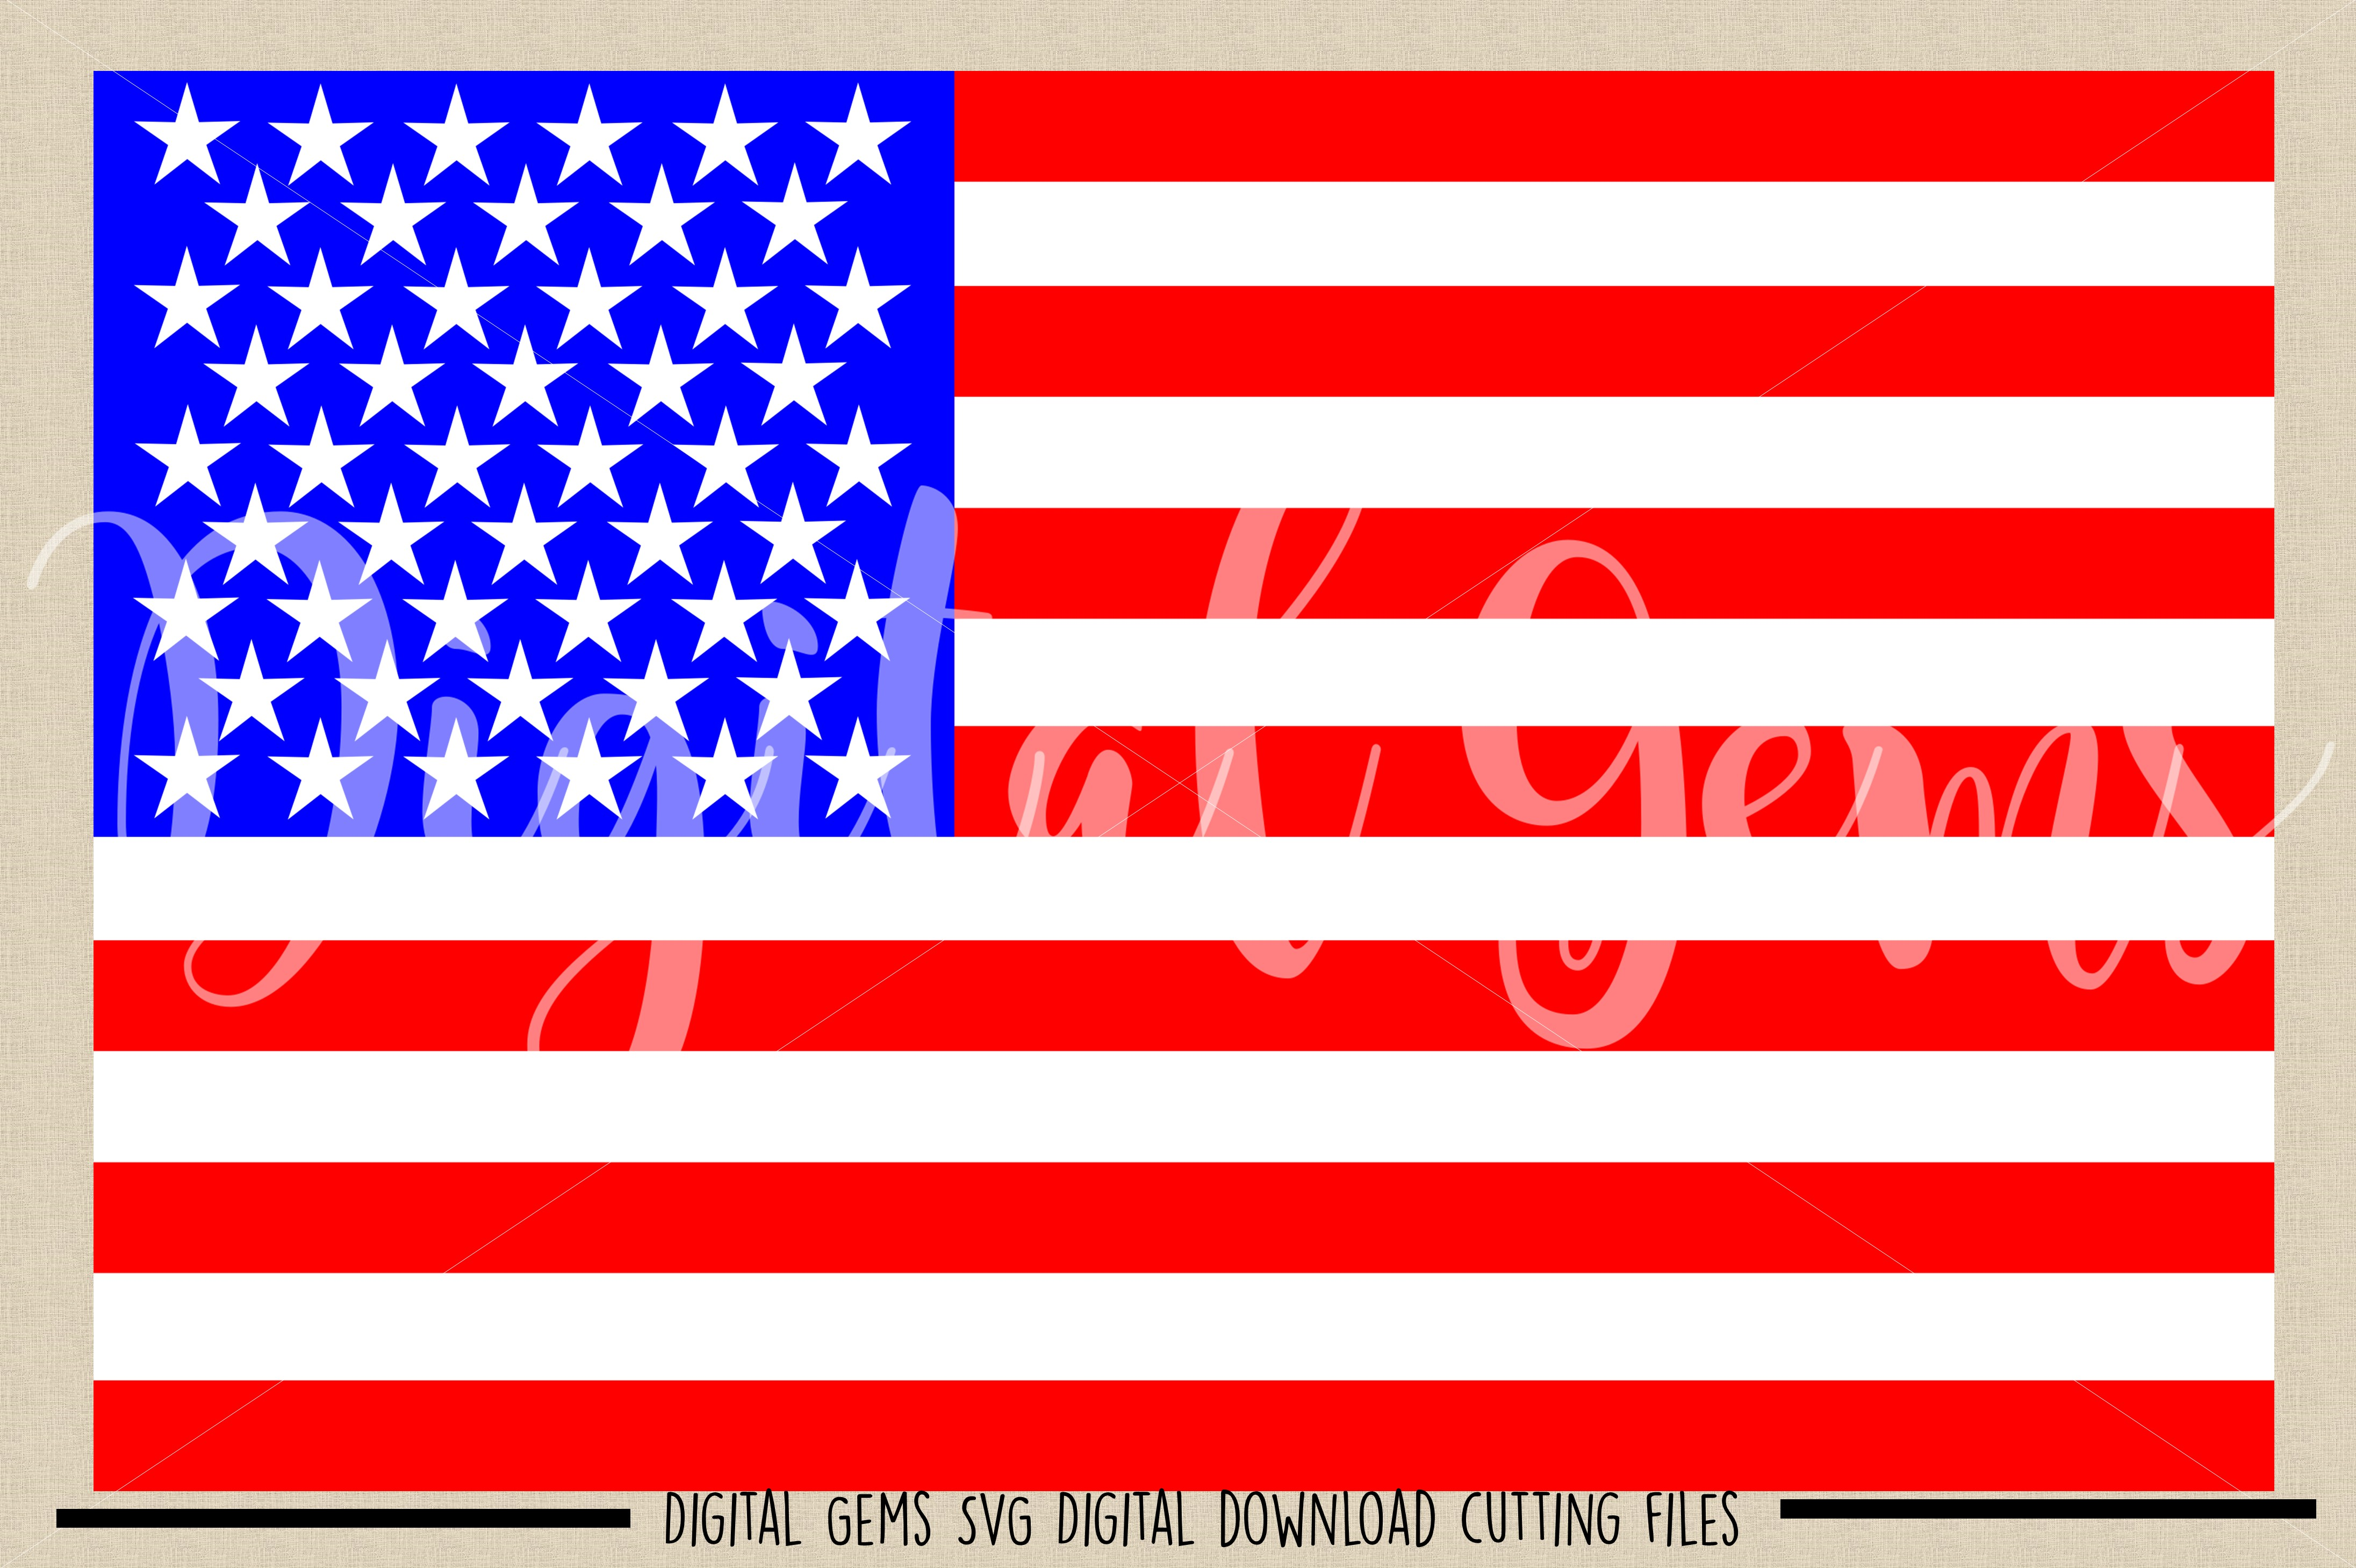 American Flag SVG / PNG / EPS / DXF files example image 2